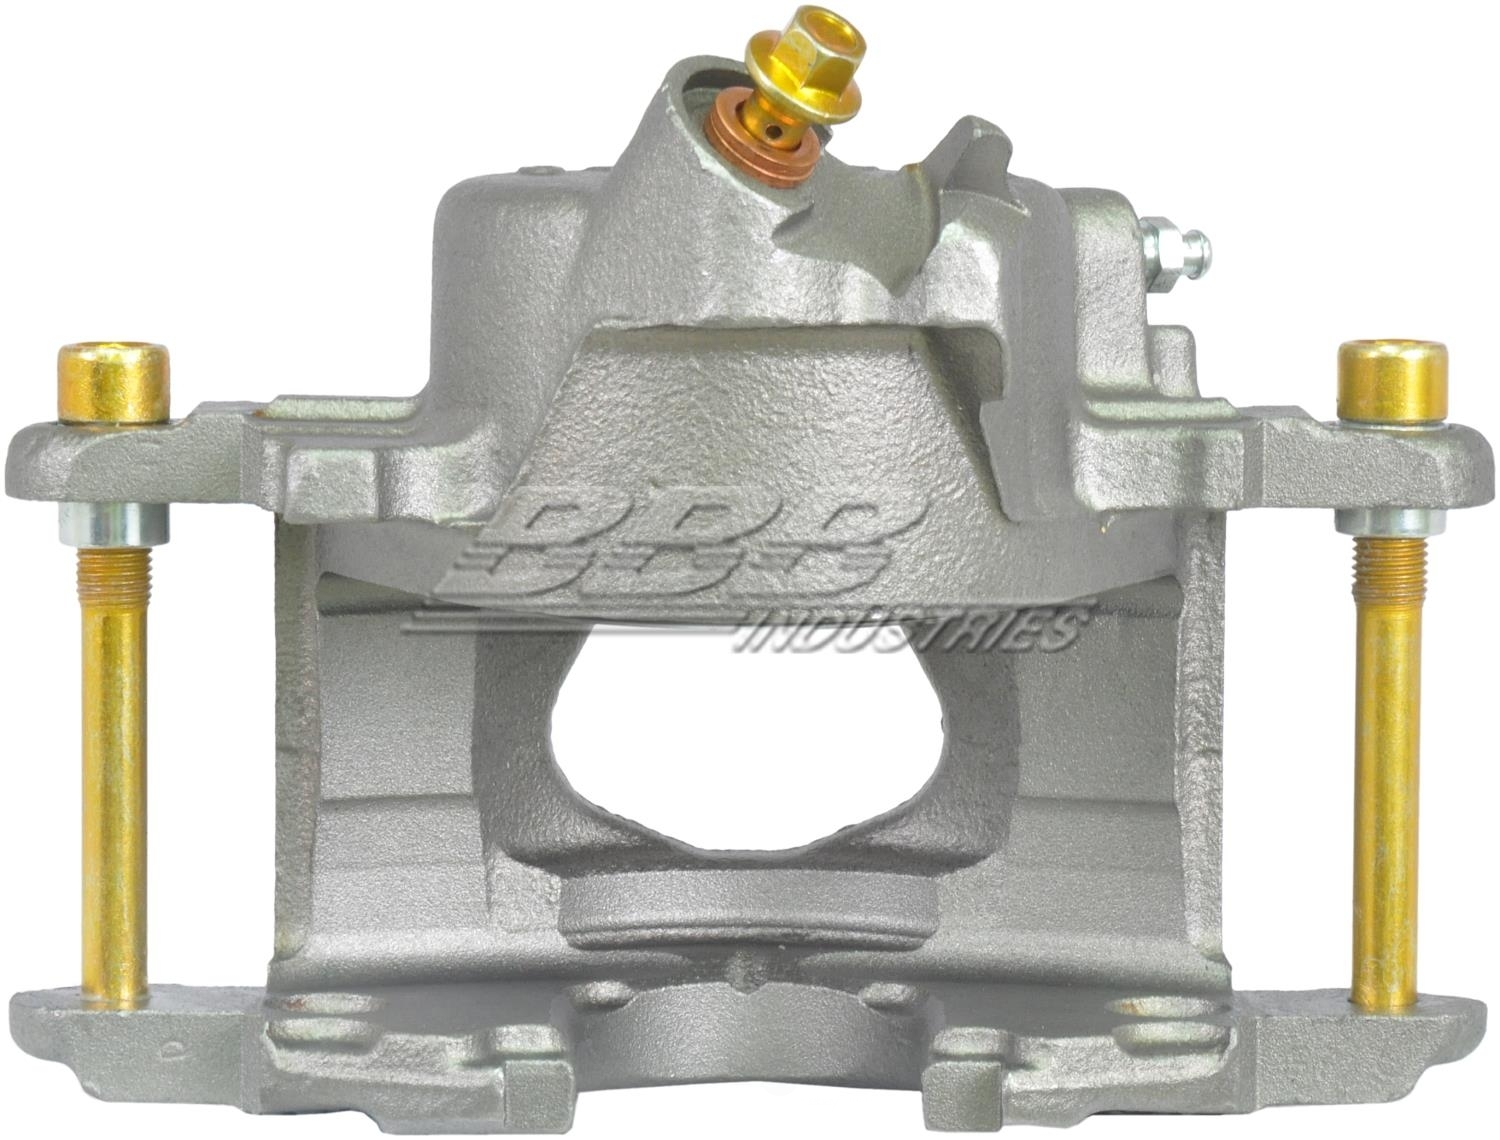 BBB INDUSTRIES - Reman Caliper w/ Installation Hardware - BBA 97-17242B